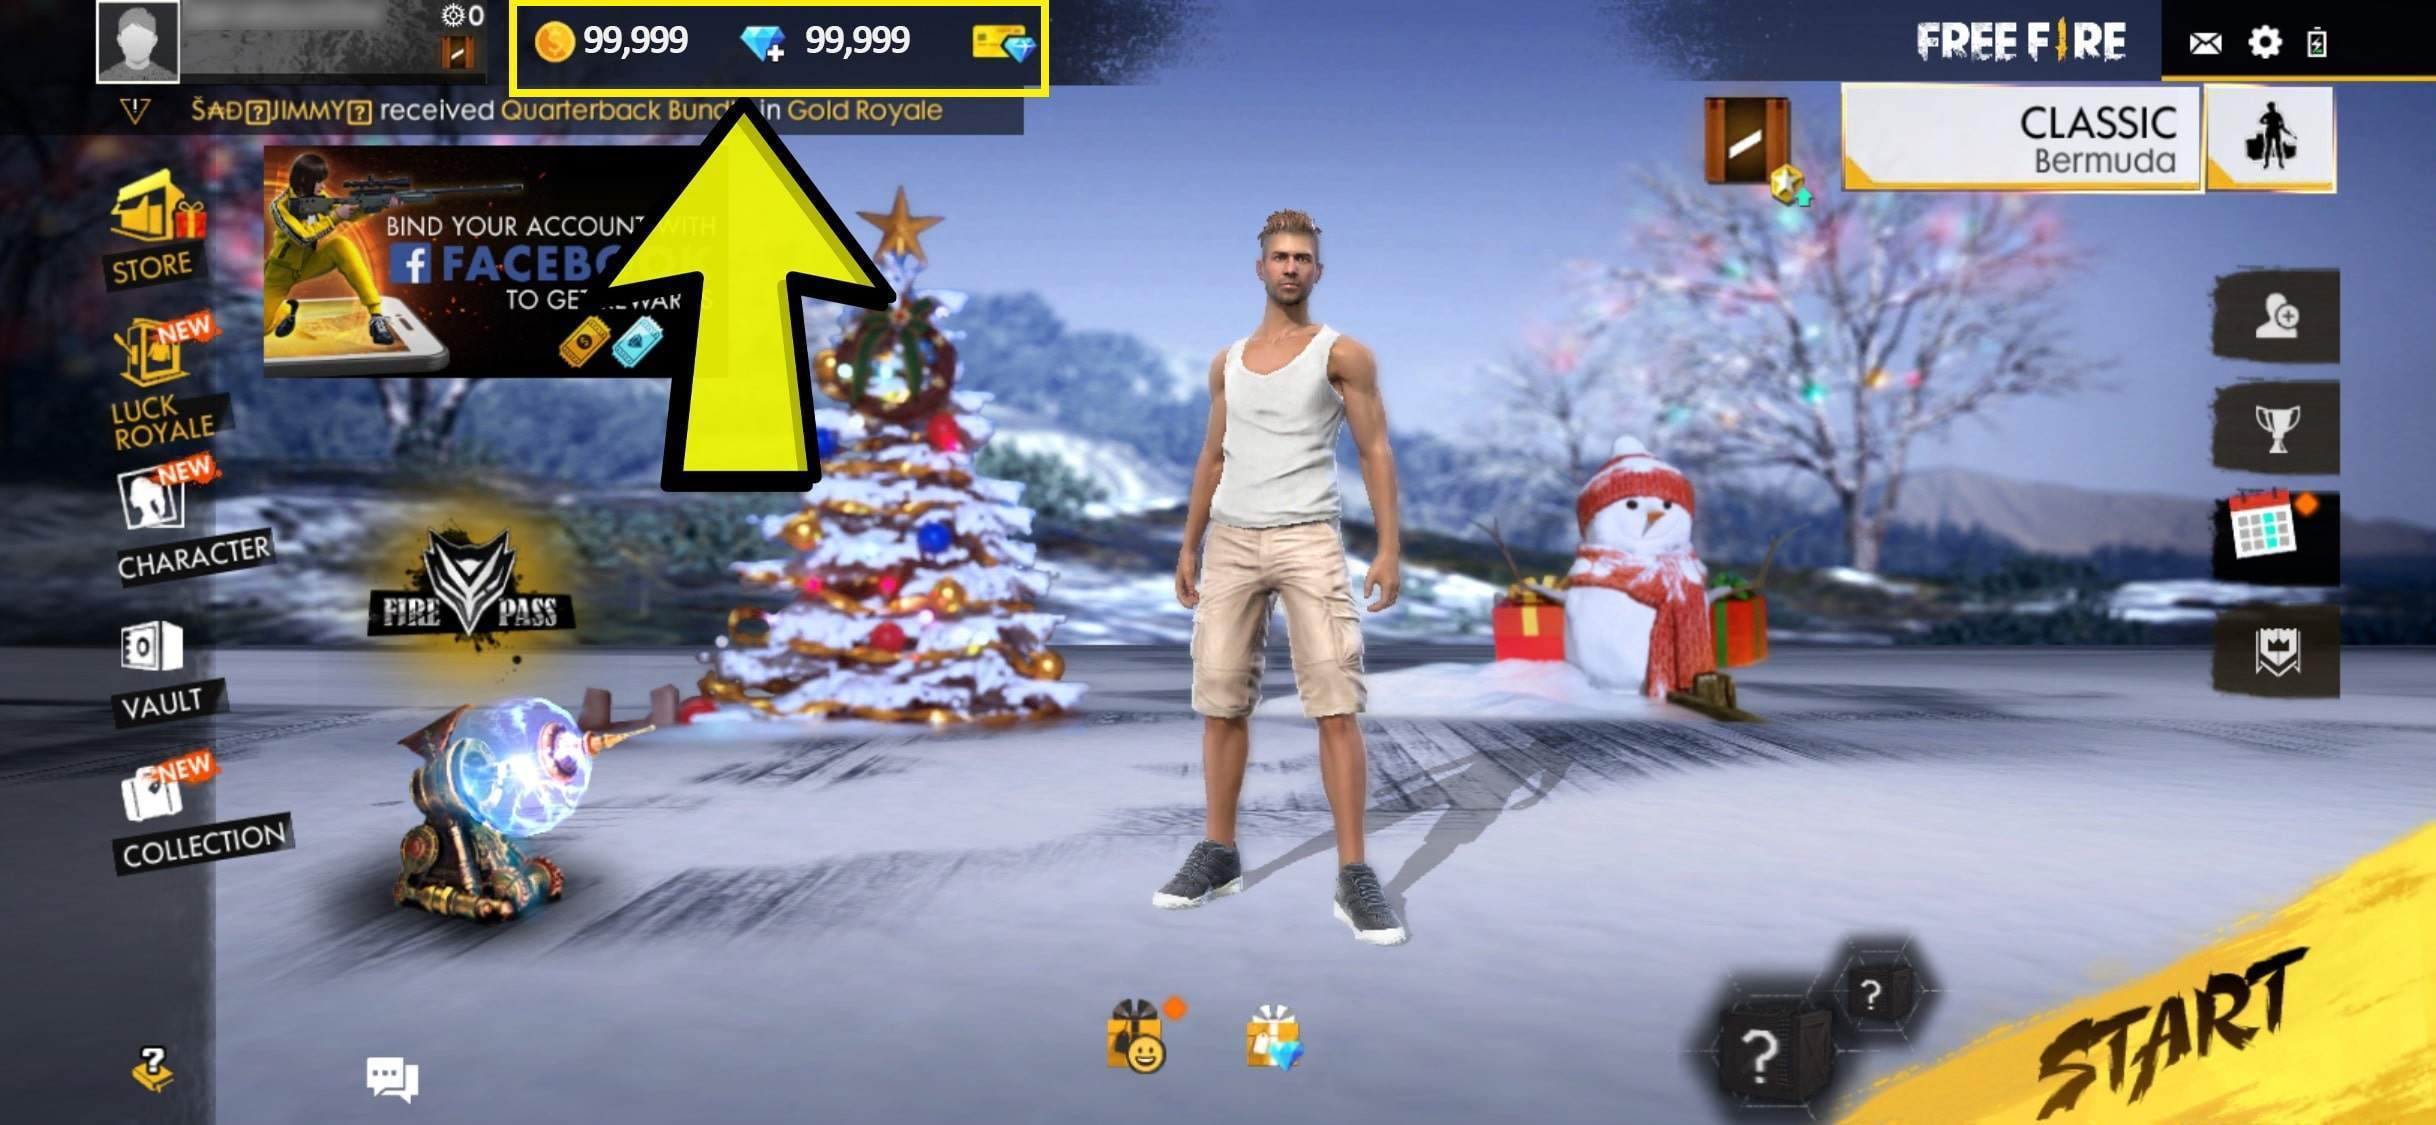 Claim Freefire Unlimited Coins and Diamonds For Free! Tested [October 2020]